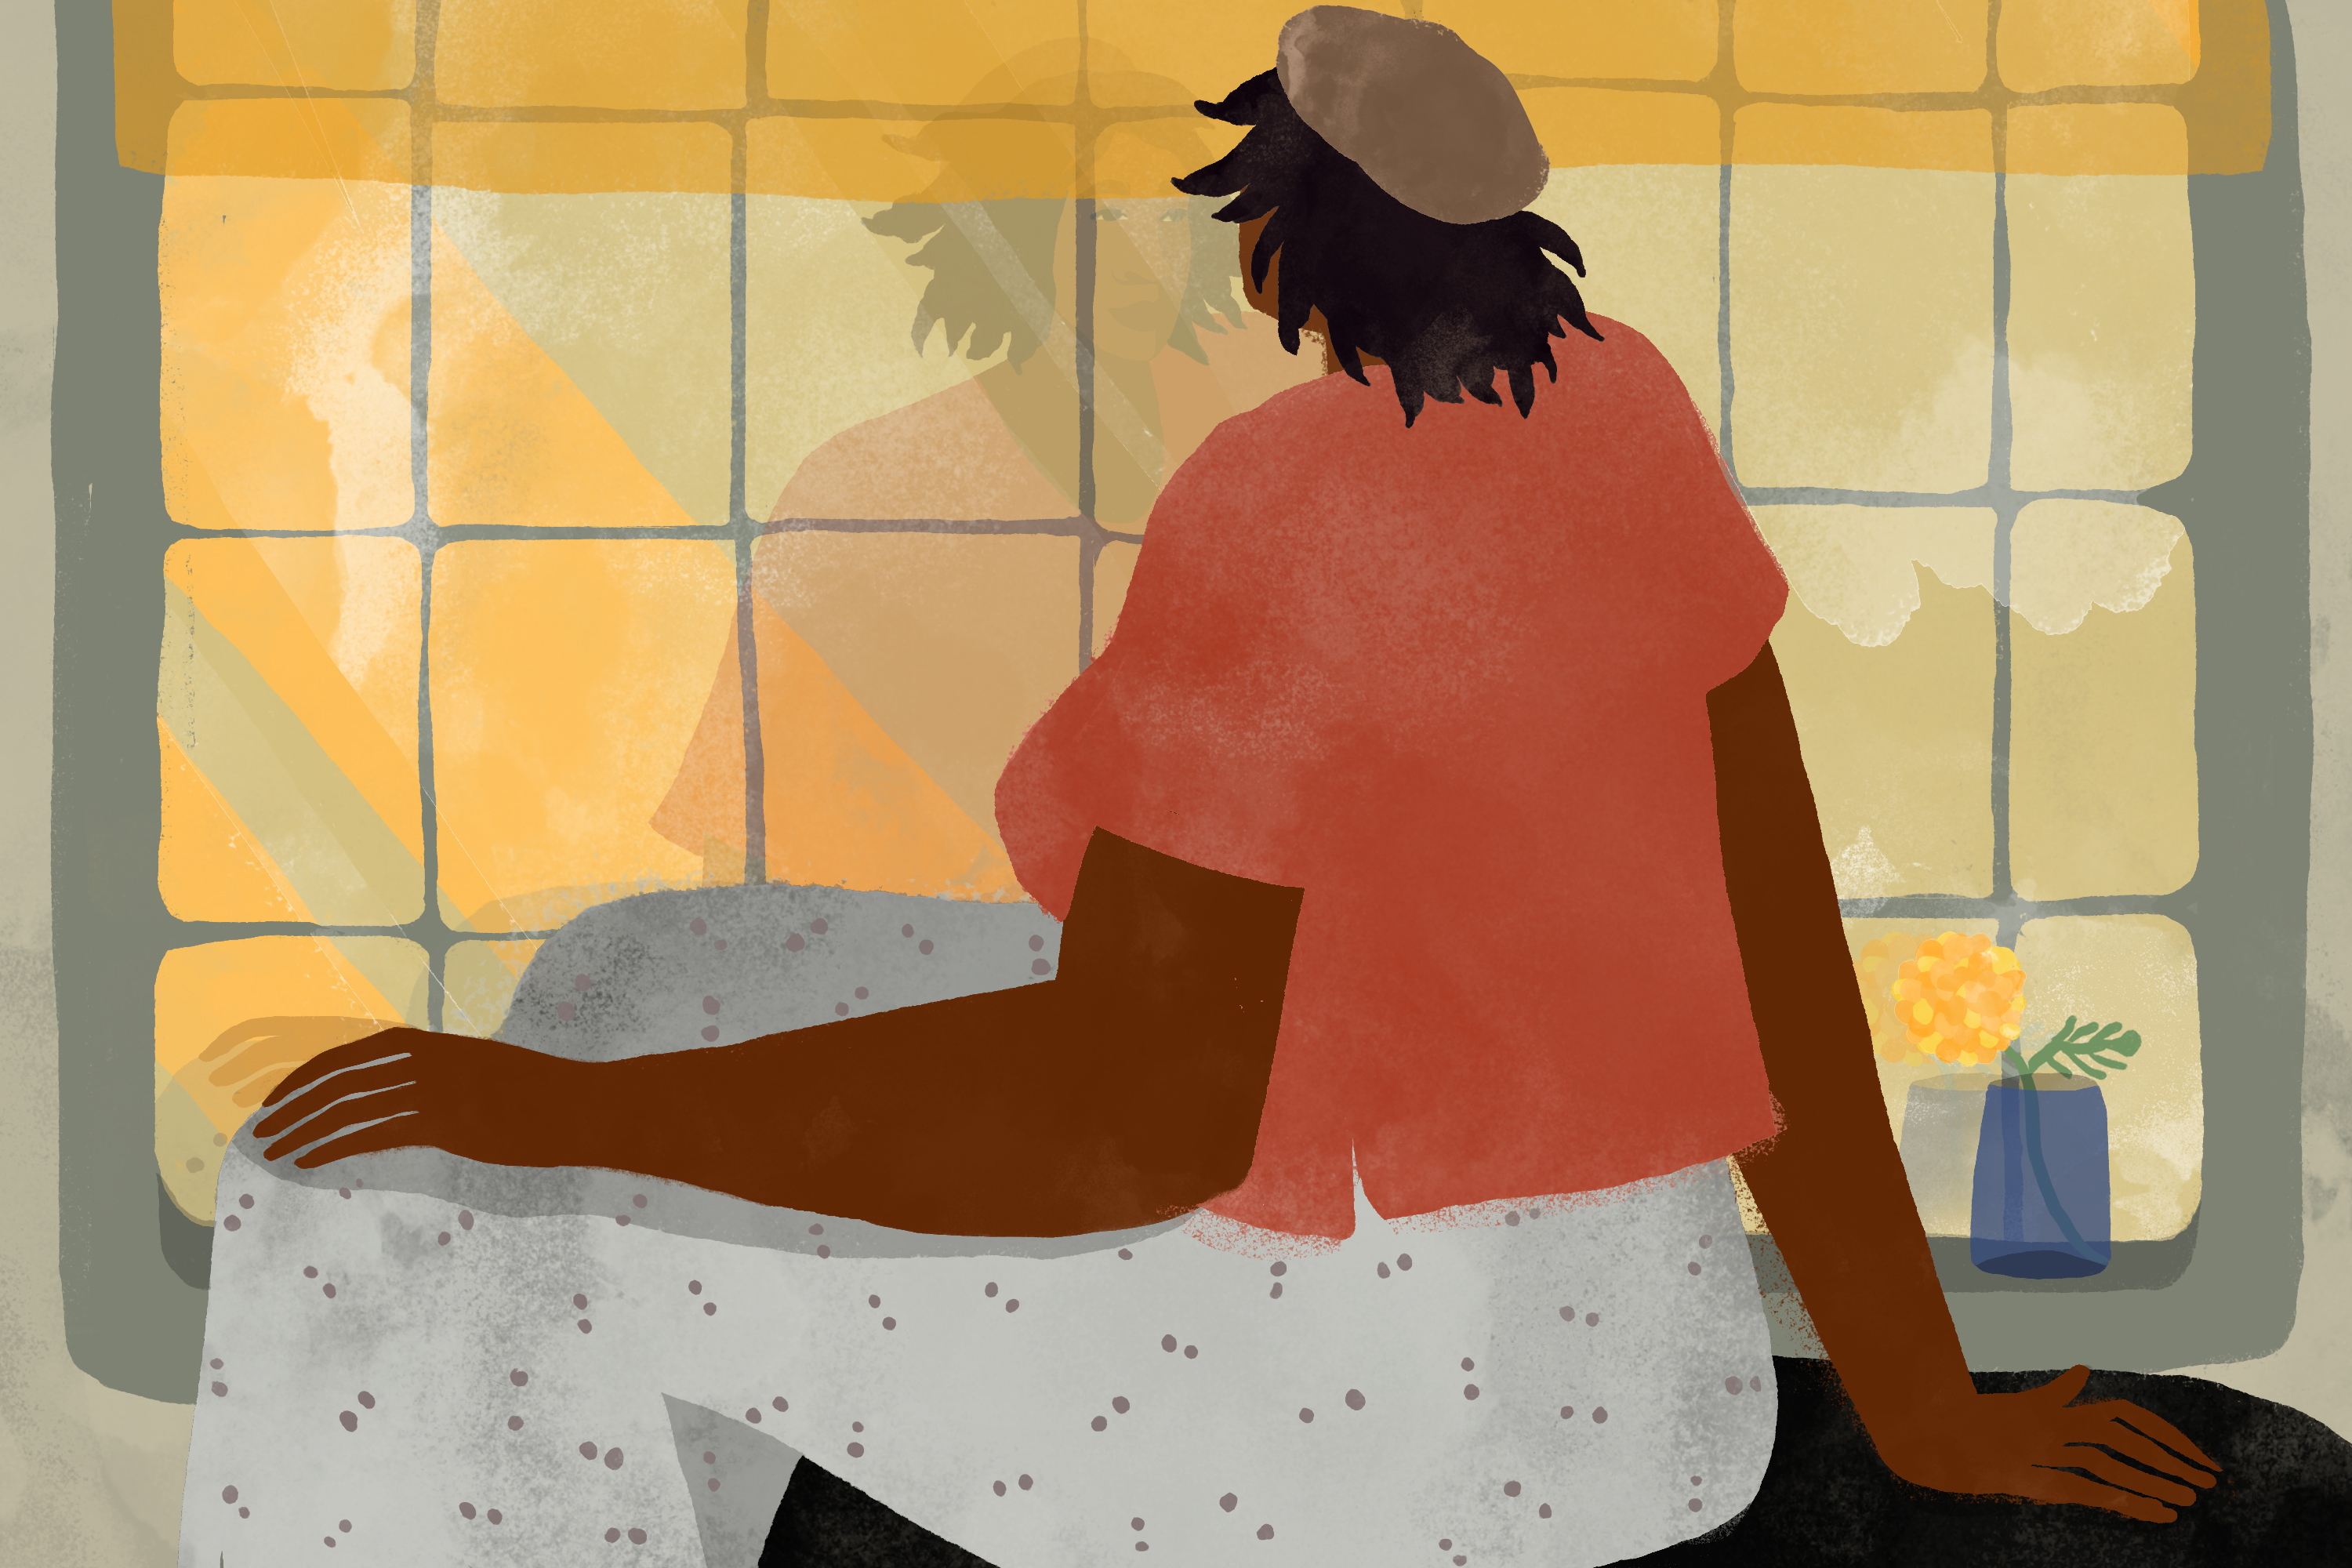 illustration of a Black woman sitting next to a single marigold and staring at her reflection in the window